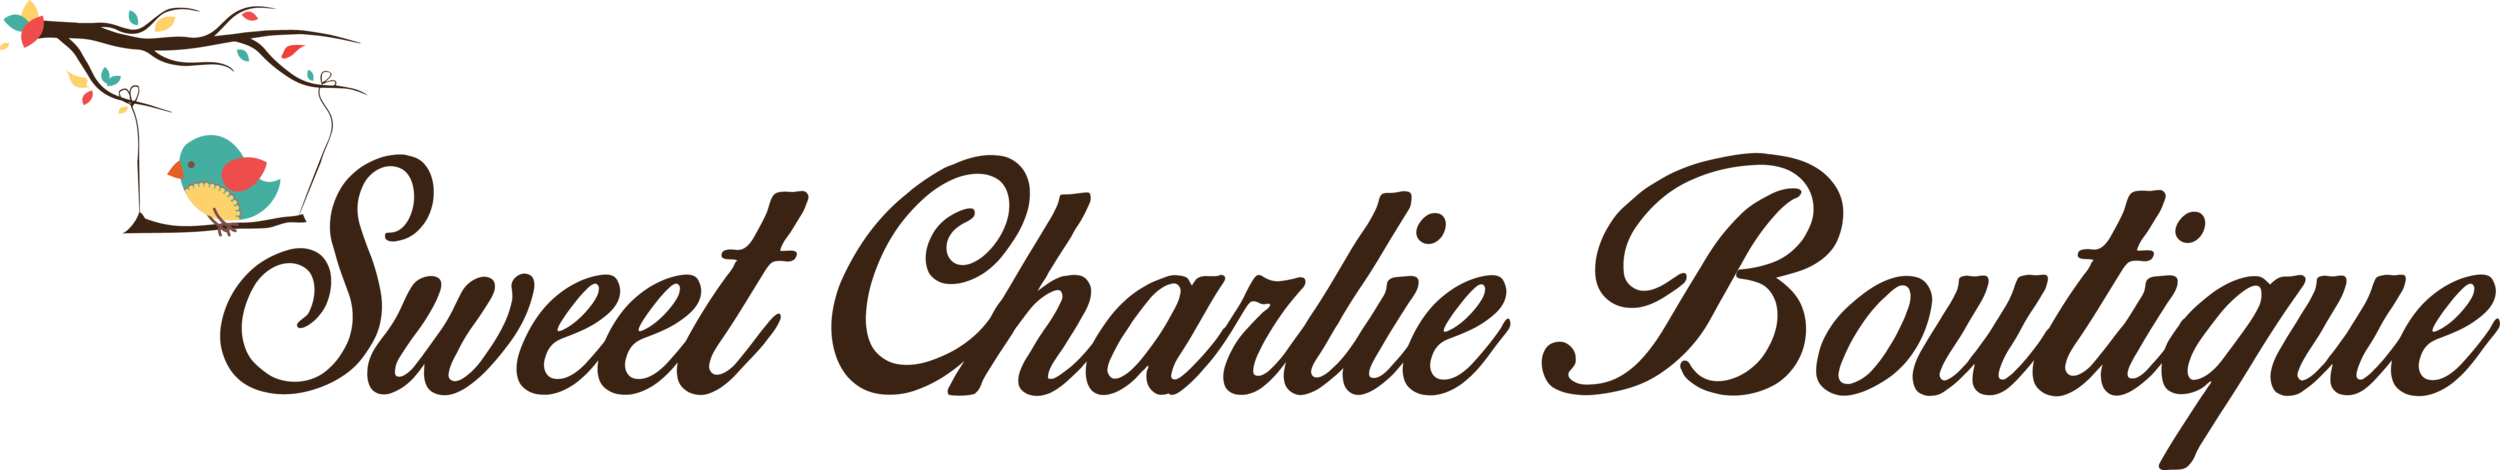 Sweet Charlie Boutique